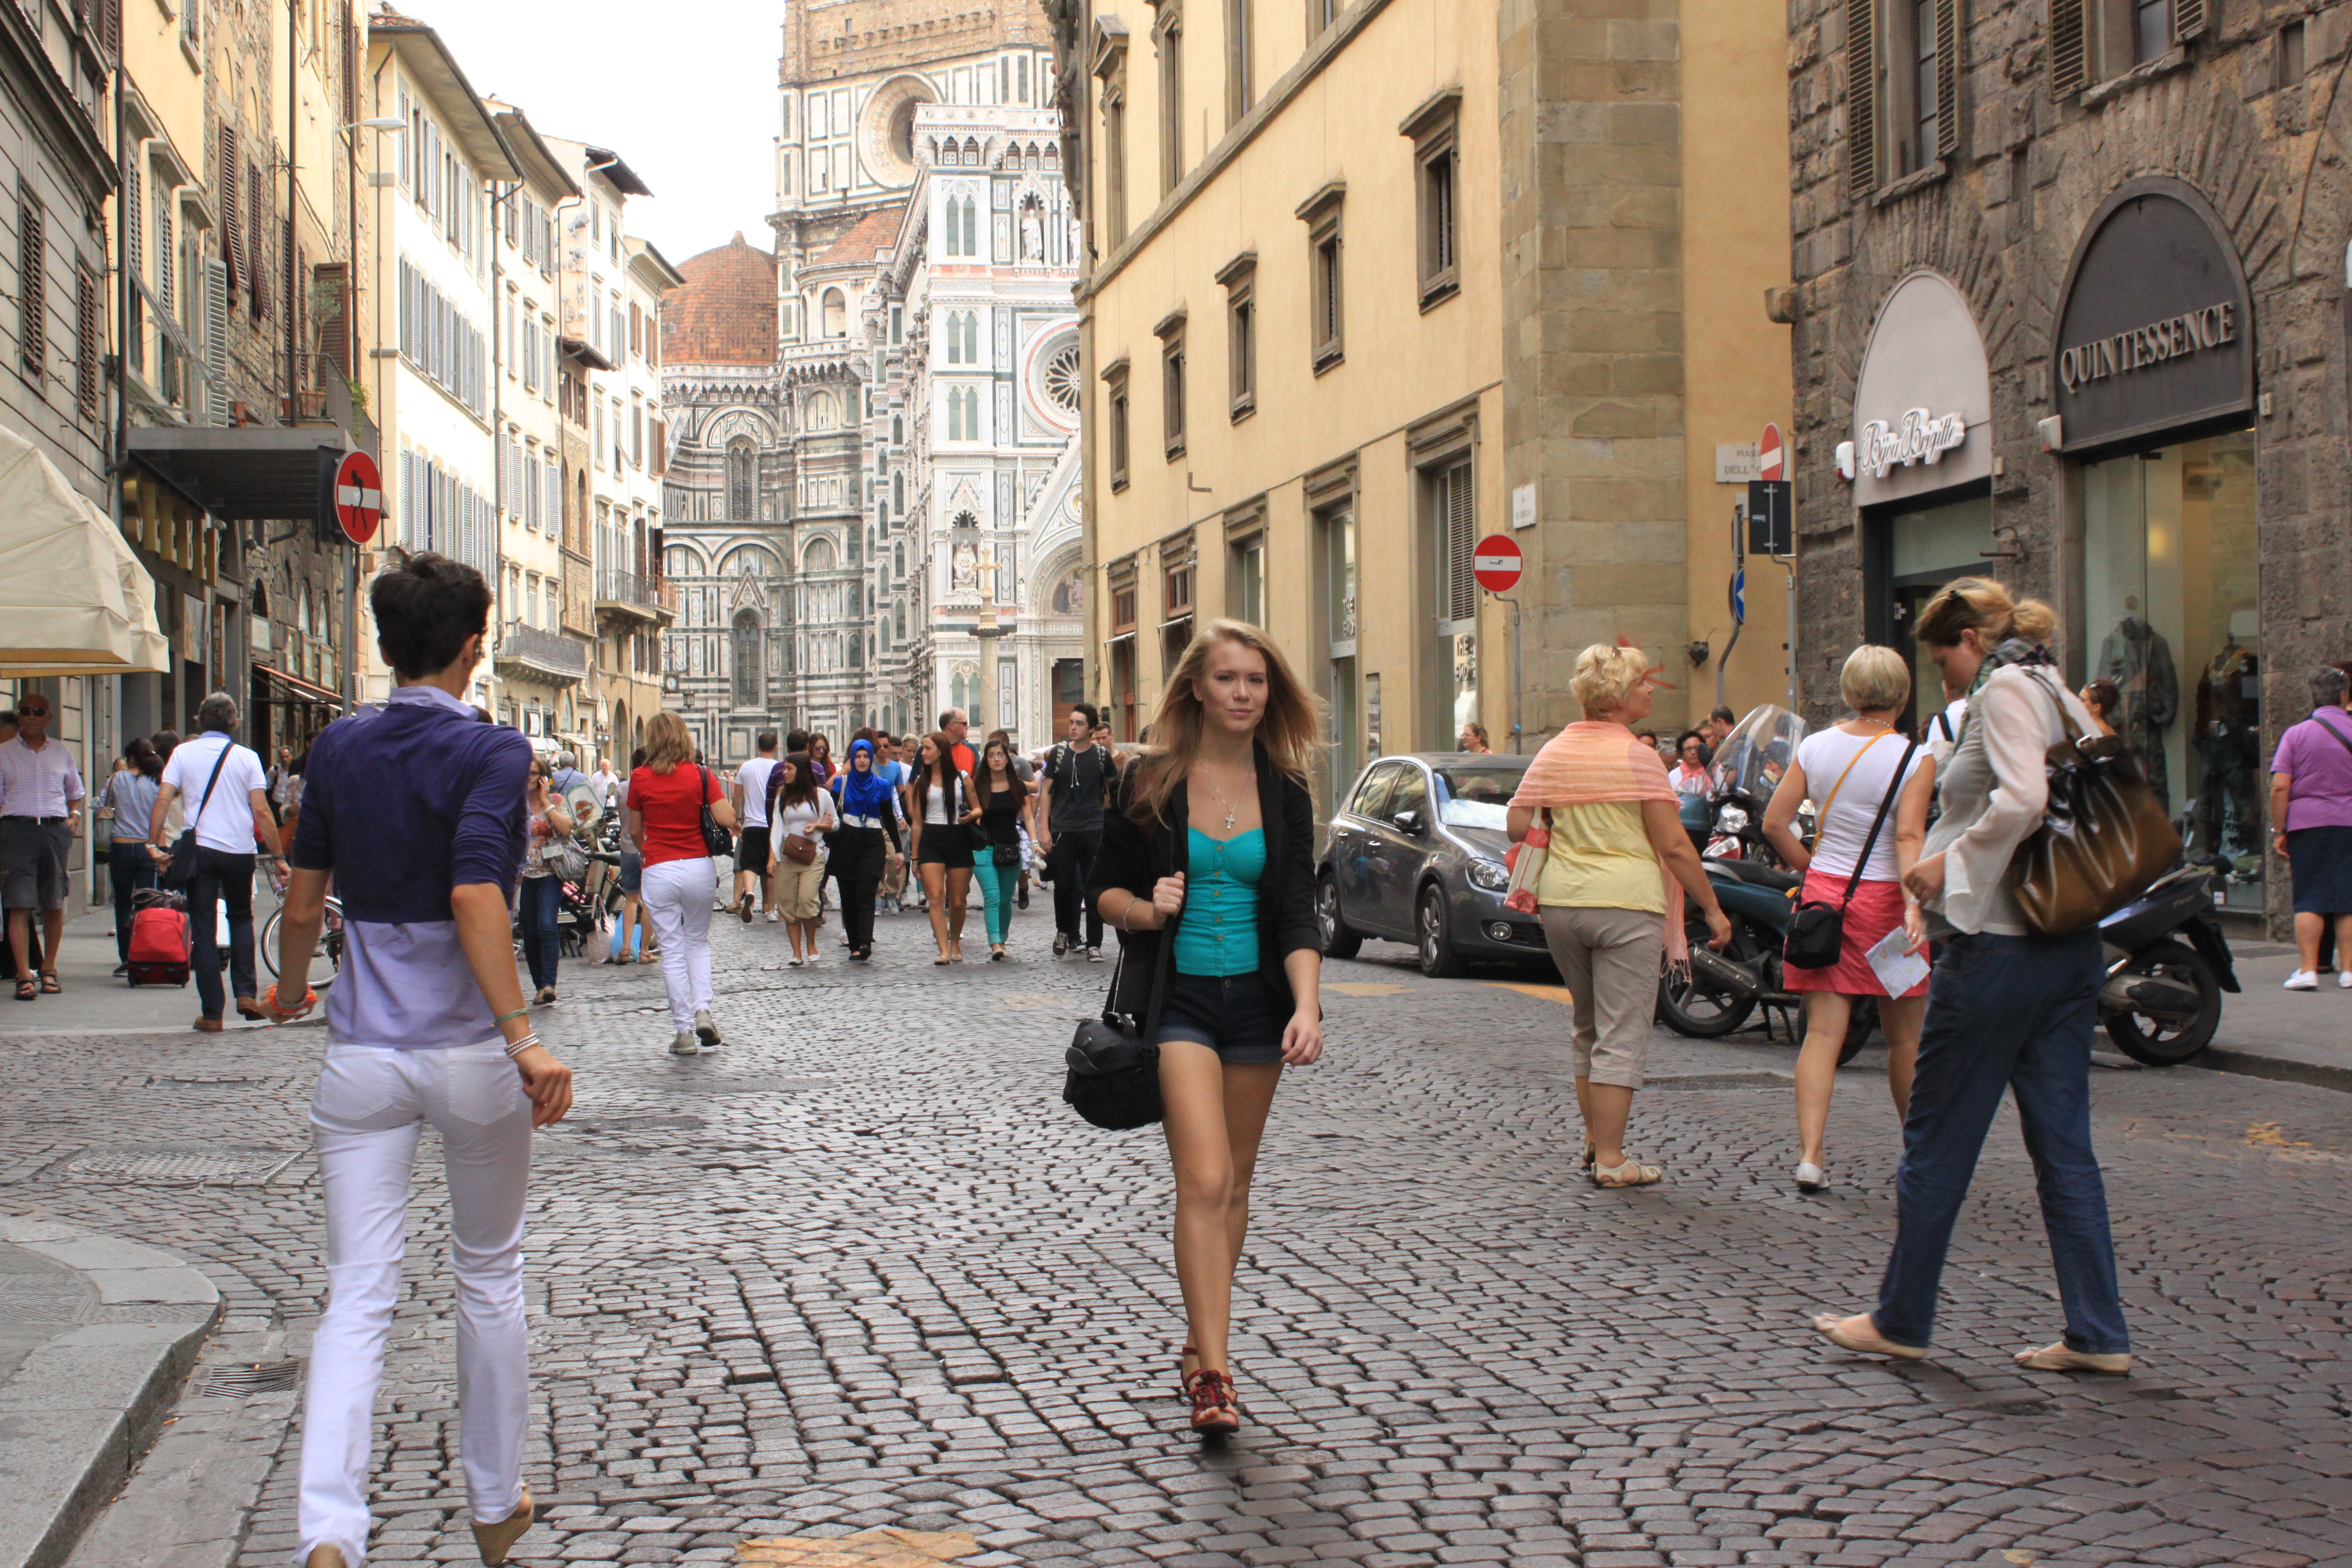 In the street of Florence Historic Centre of Florence - Italy Anna Urukova